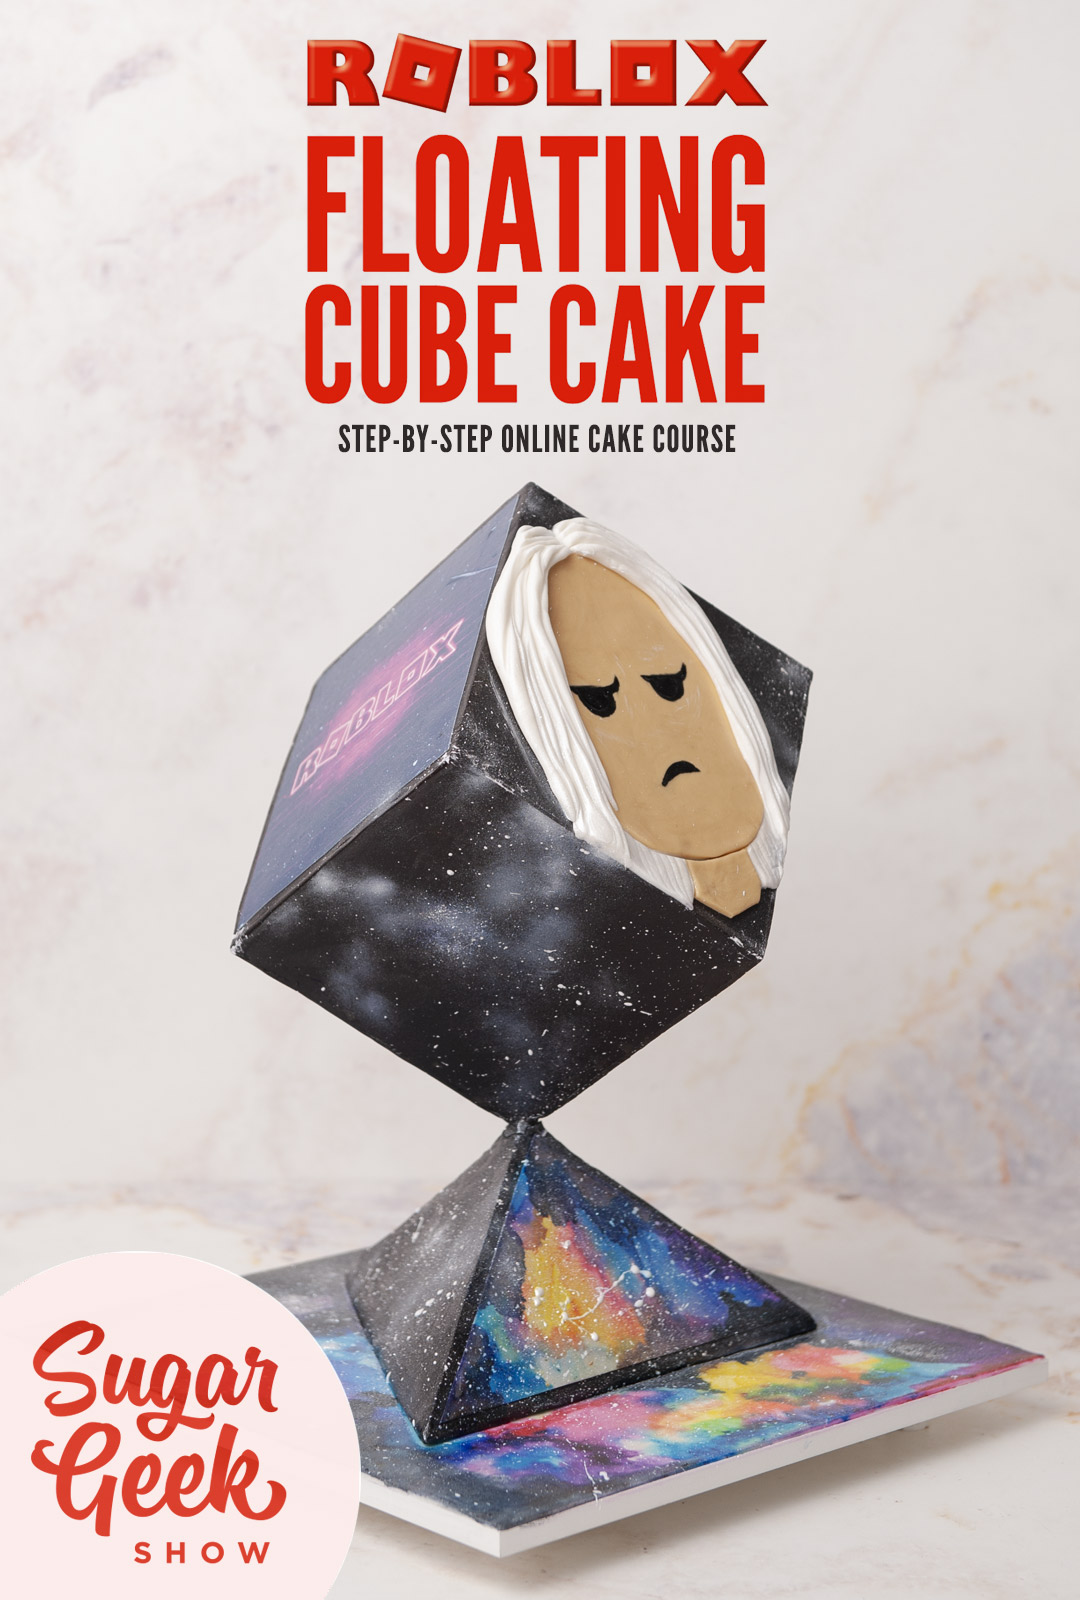 Gravity-defying cake sculpted to look like a floating cube from Roblox